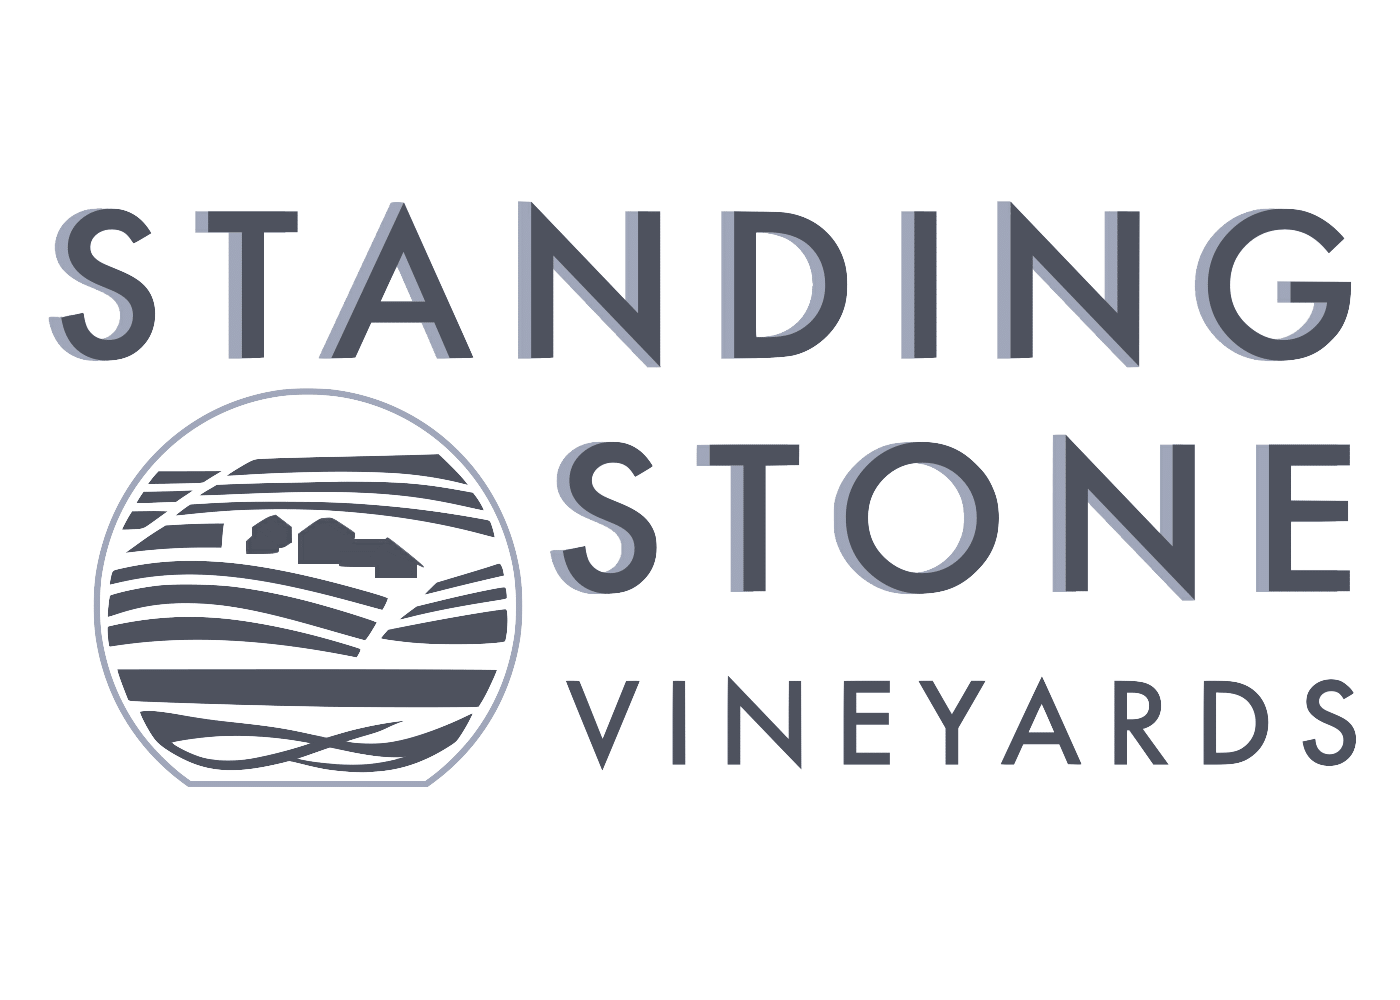 Standing Stone Vineyards logo